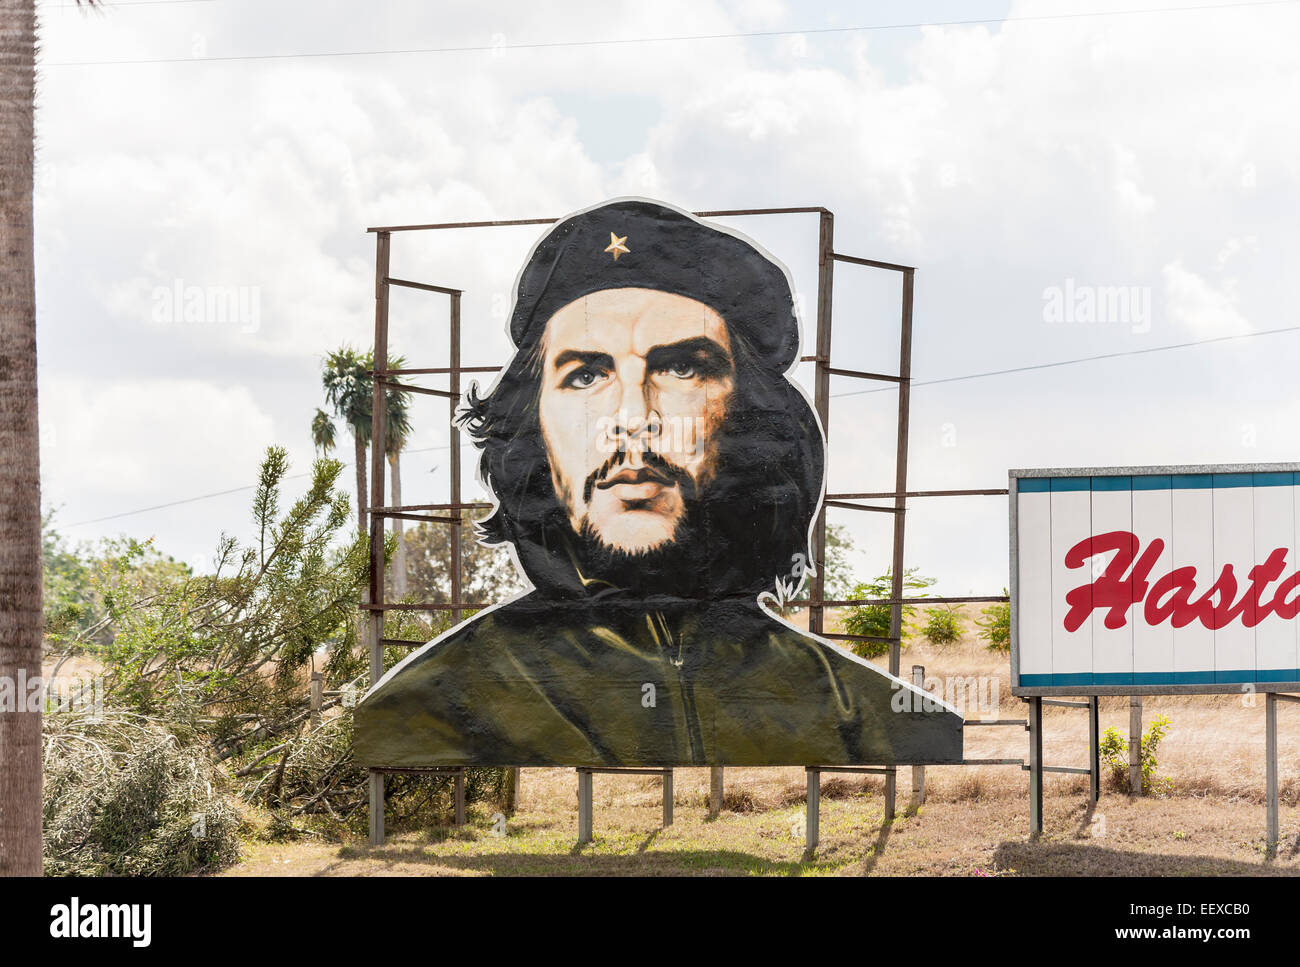 Typical large roadside billboard image of the famous national revolutionary hero and patriot Che Guevara, in Camaguey, Stock Photo